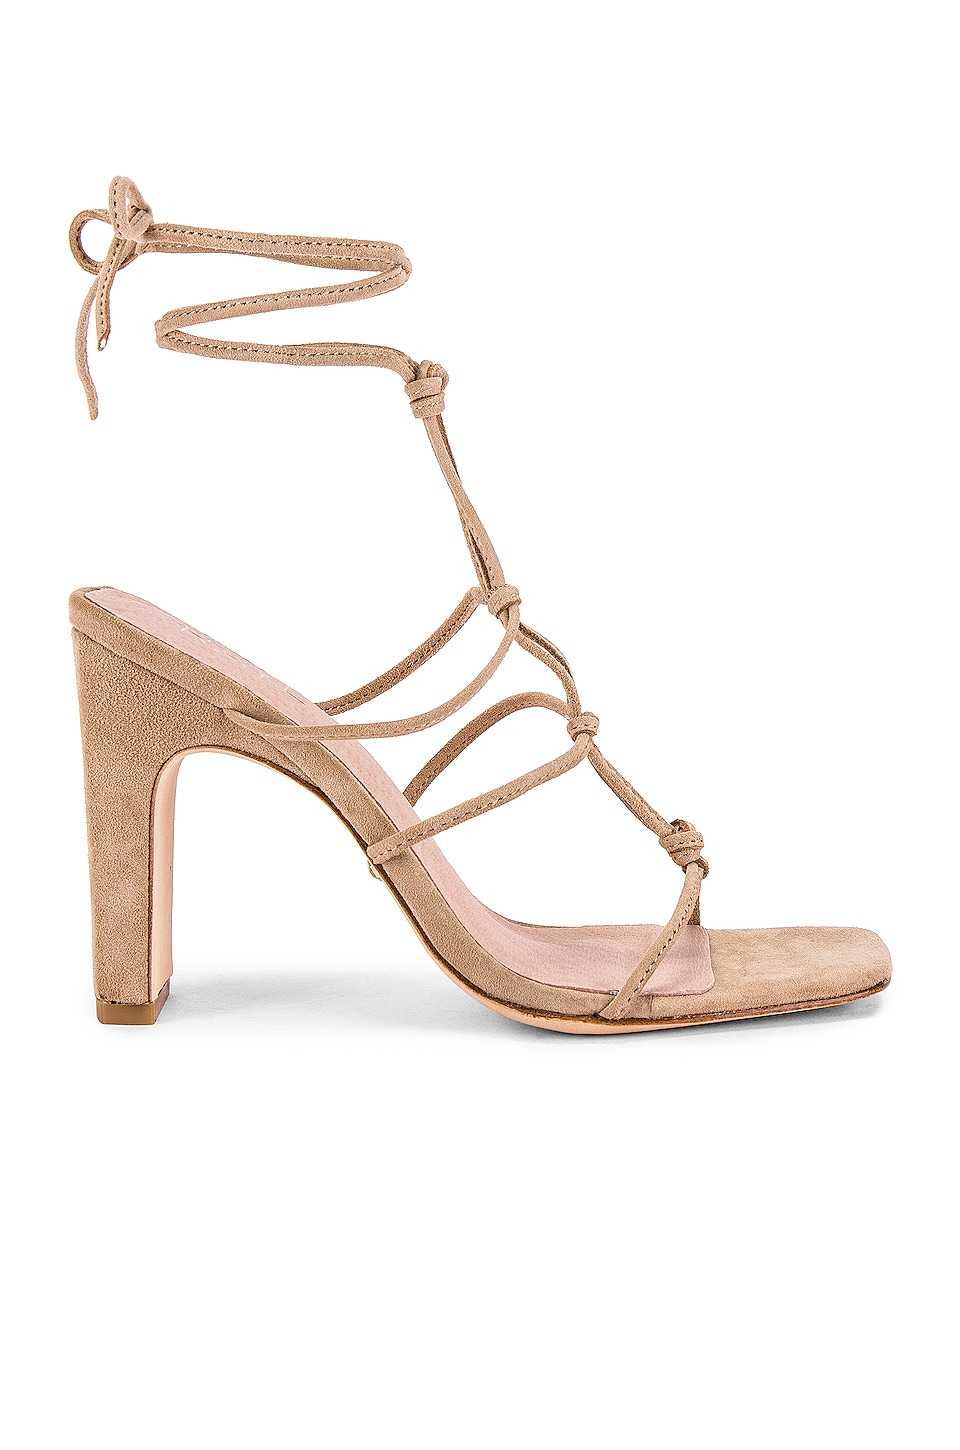 RAYE Havoc Heel in Tan